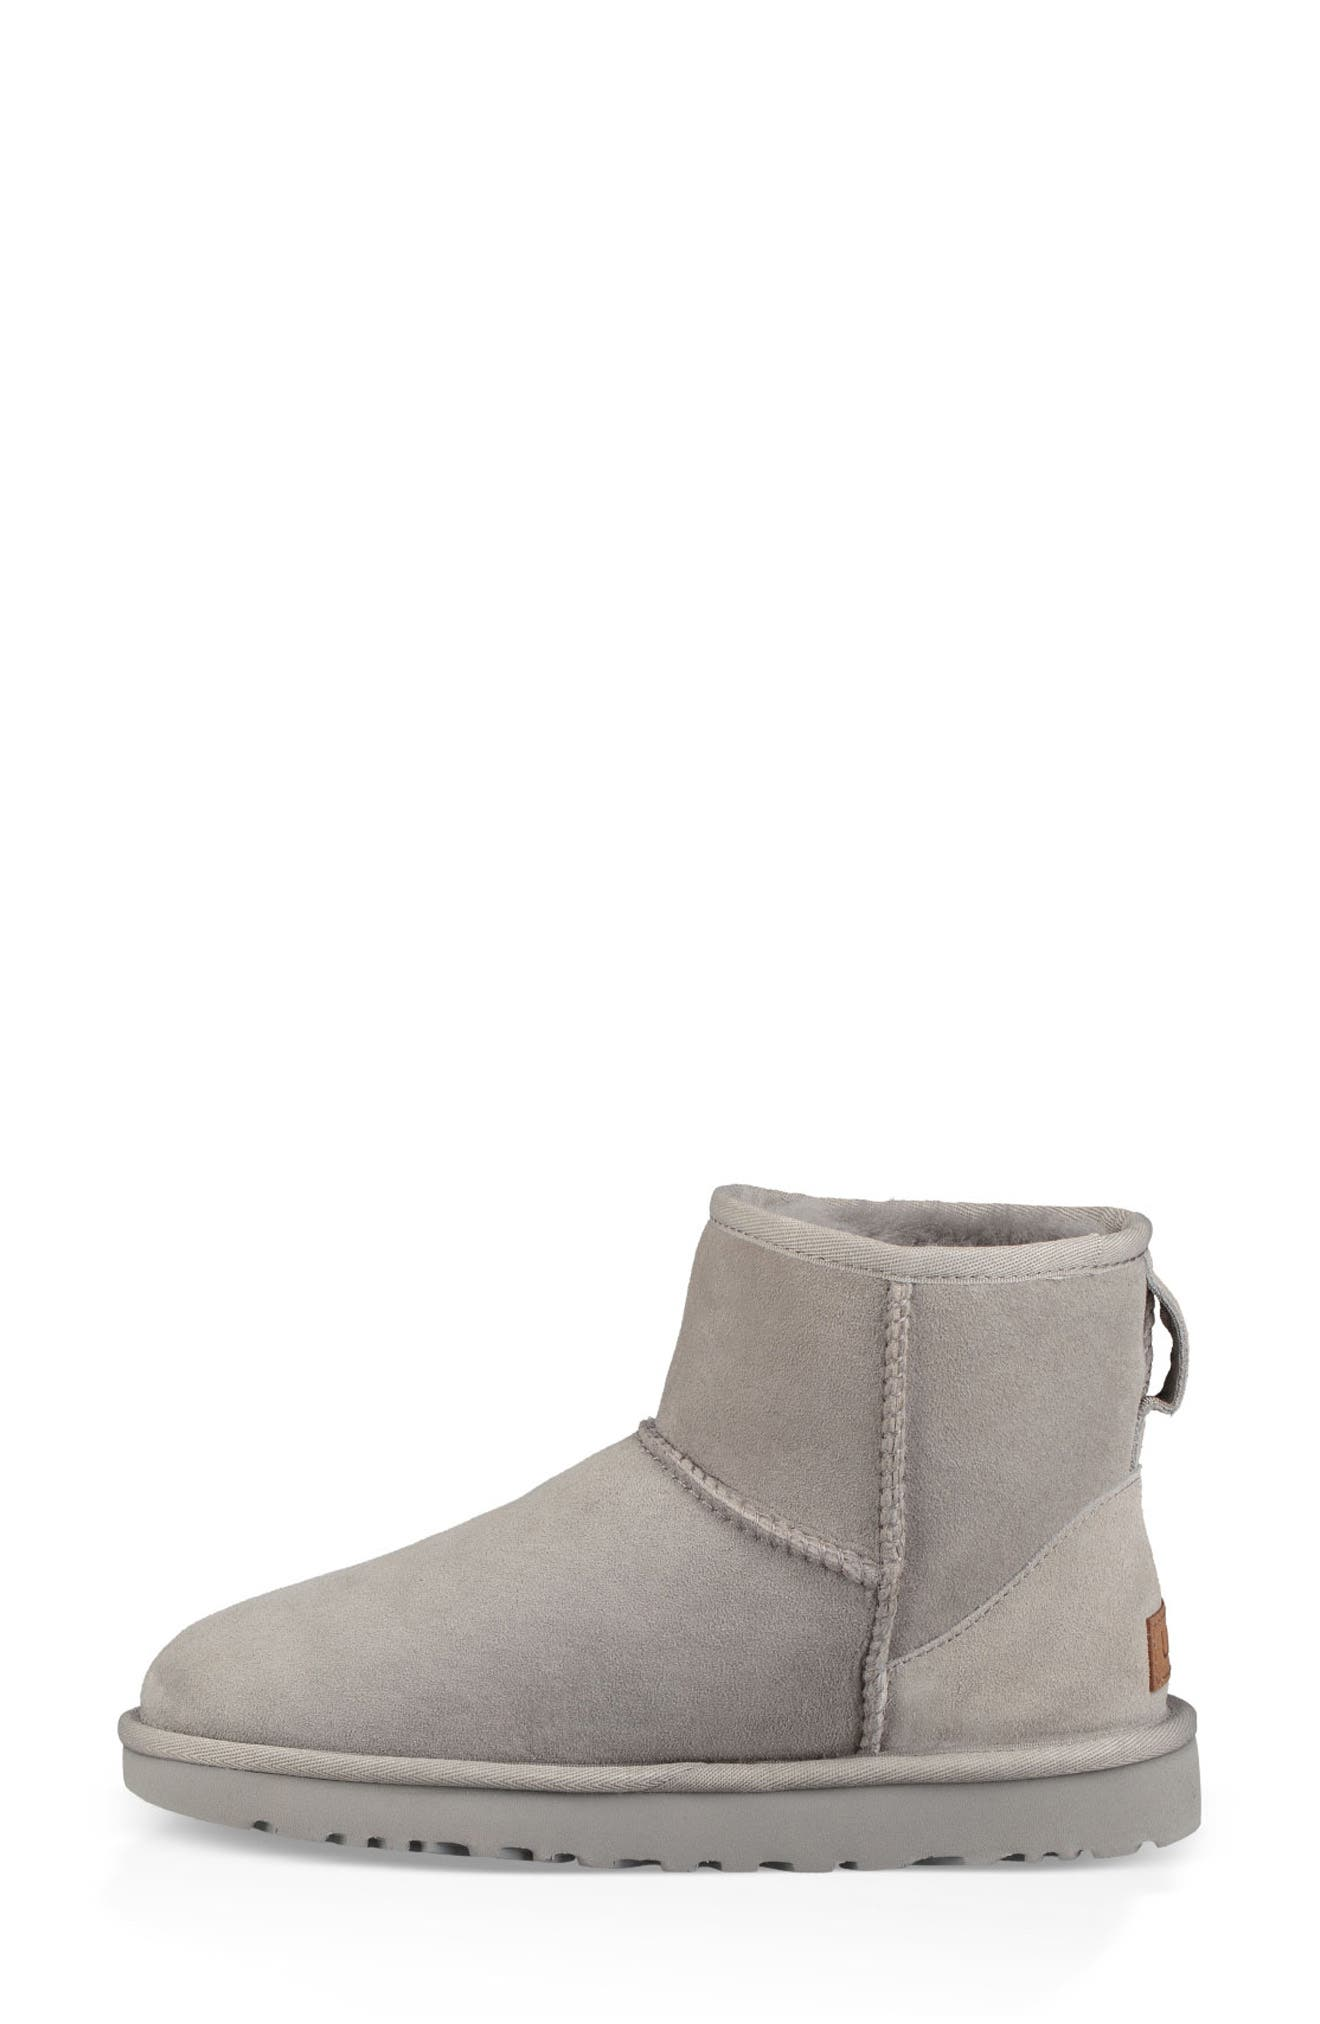 'Classic Mini II' Genuine Shearling Lined Boot,                             Alternate thumbnail 6, color,                             SEAL SUEDE